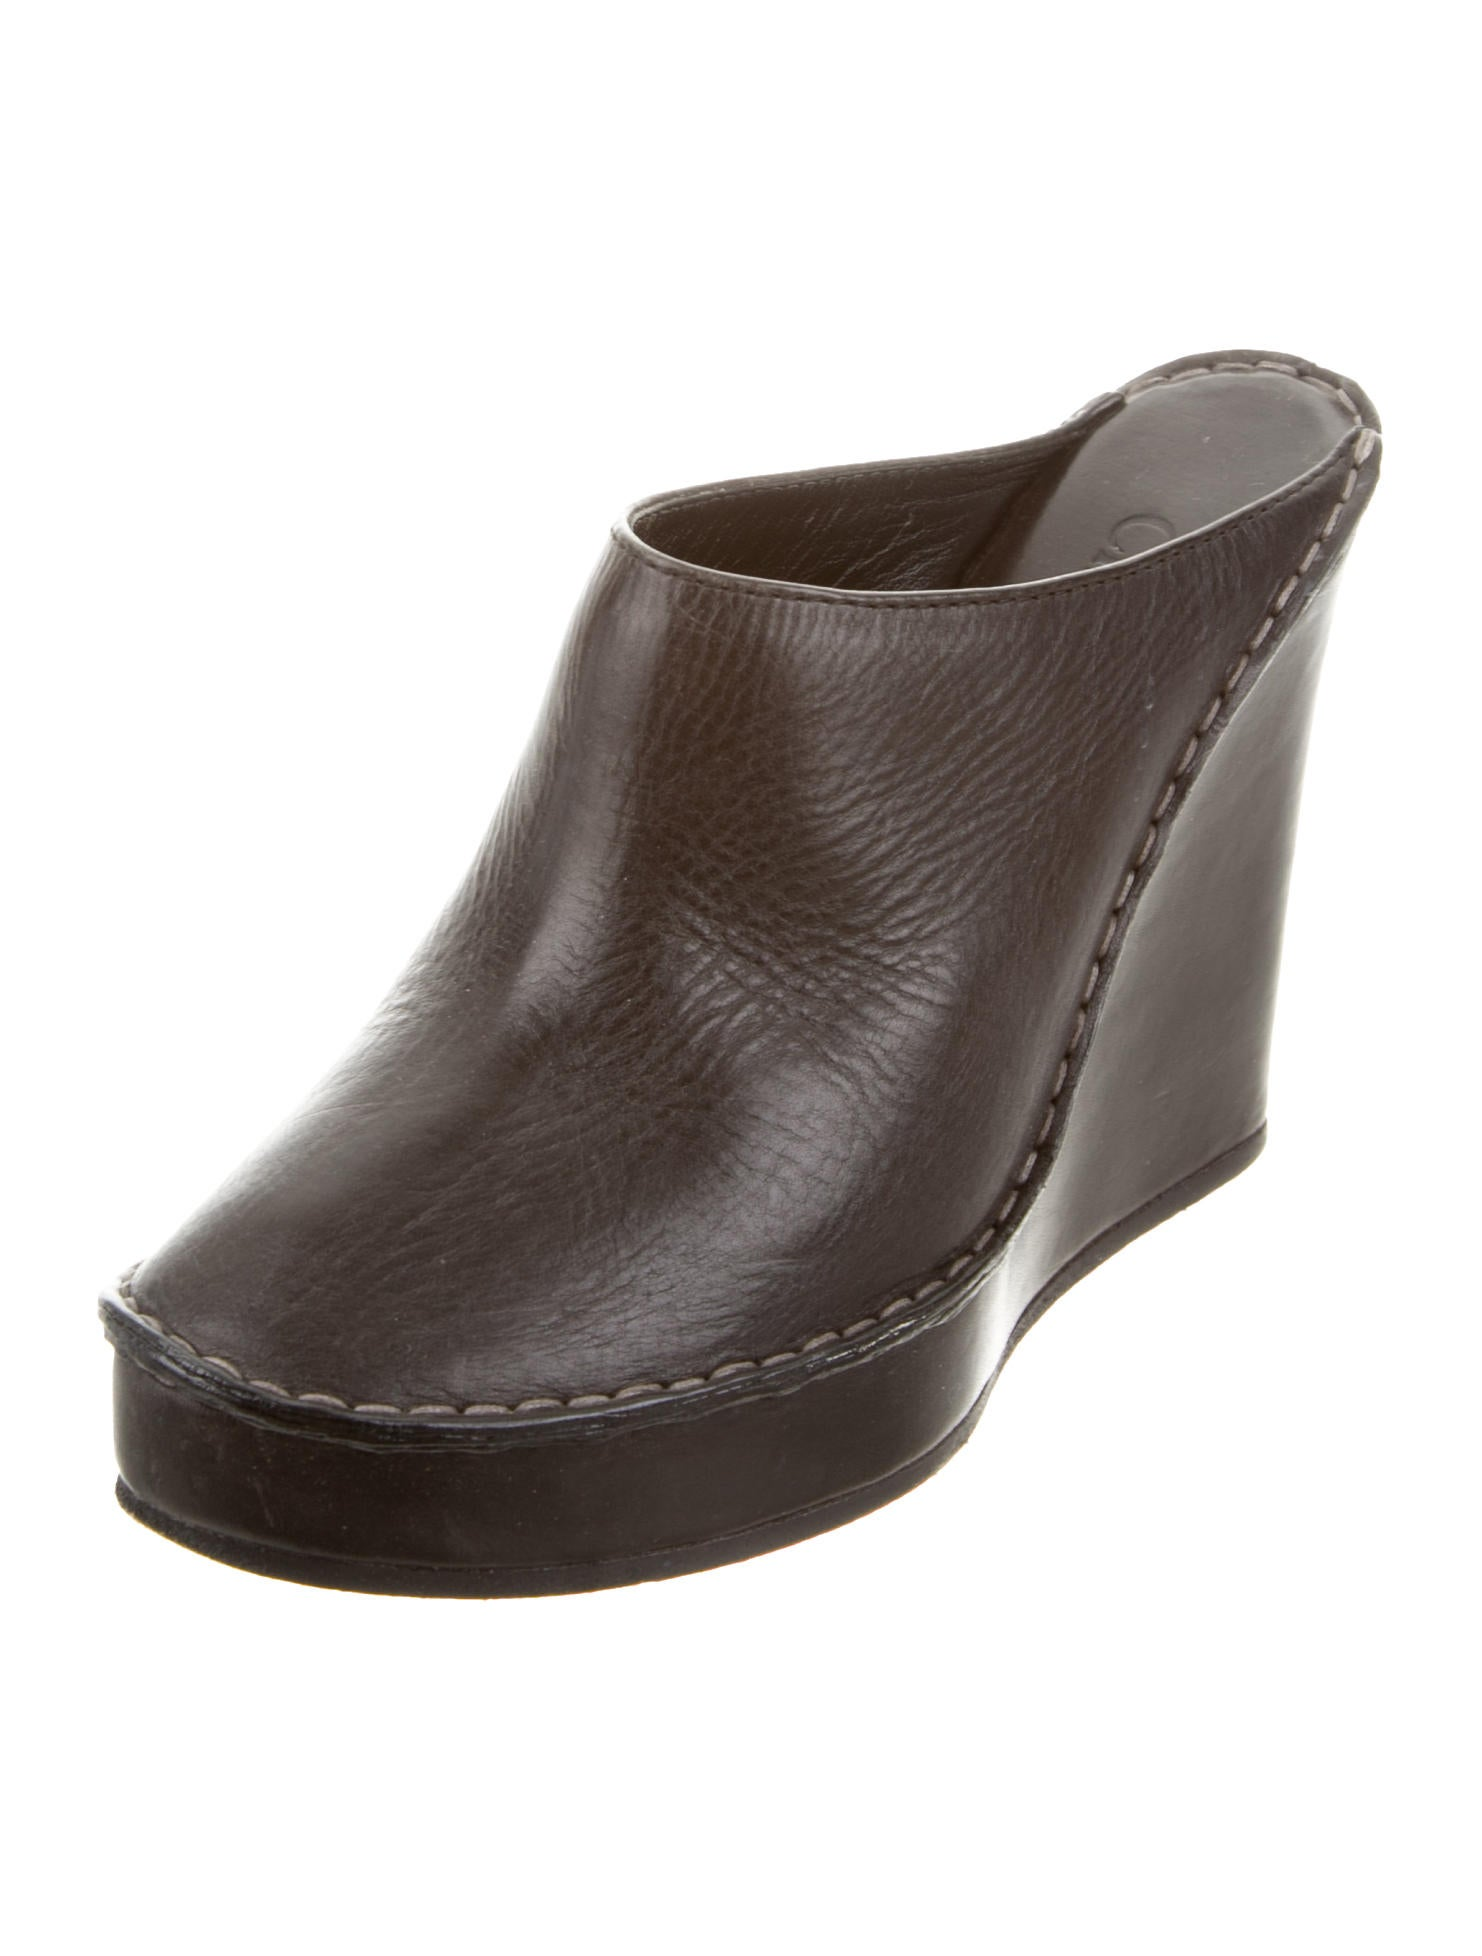 chlo 233 leather platform mules shoes chl52224 the realreal